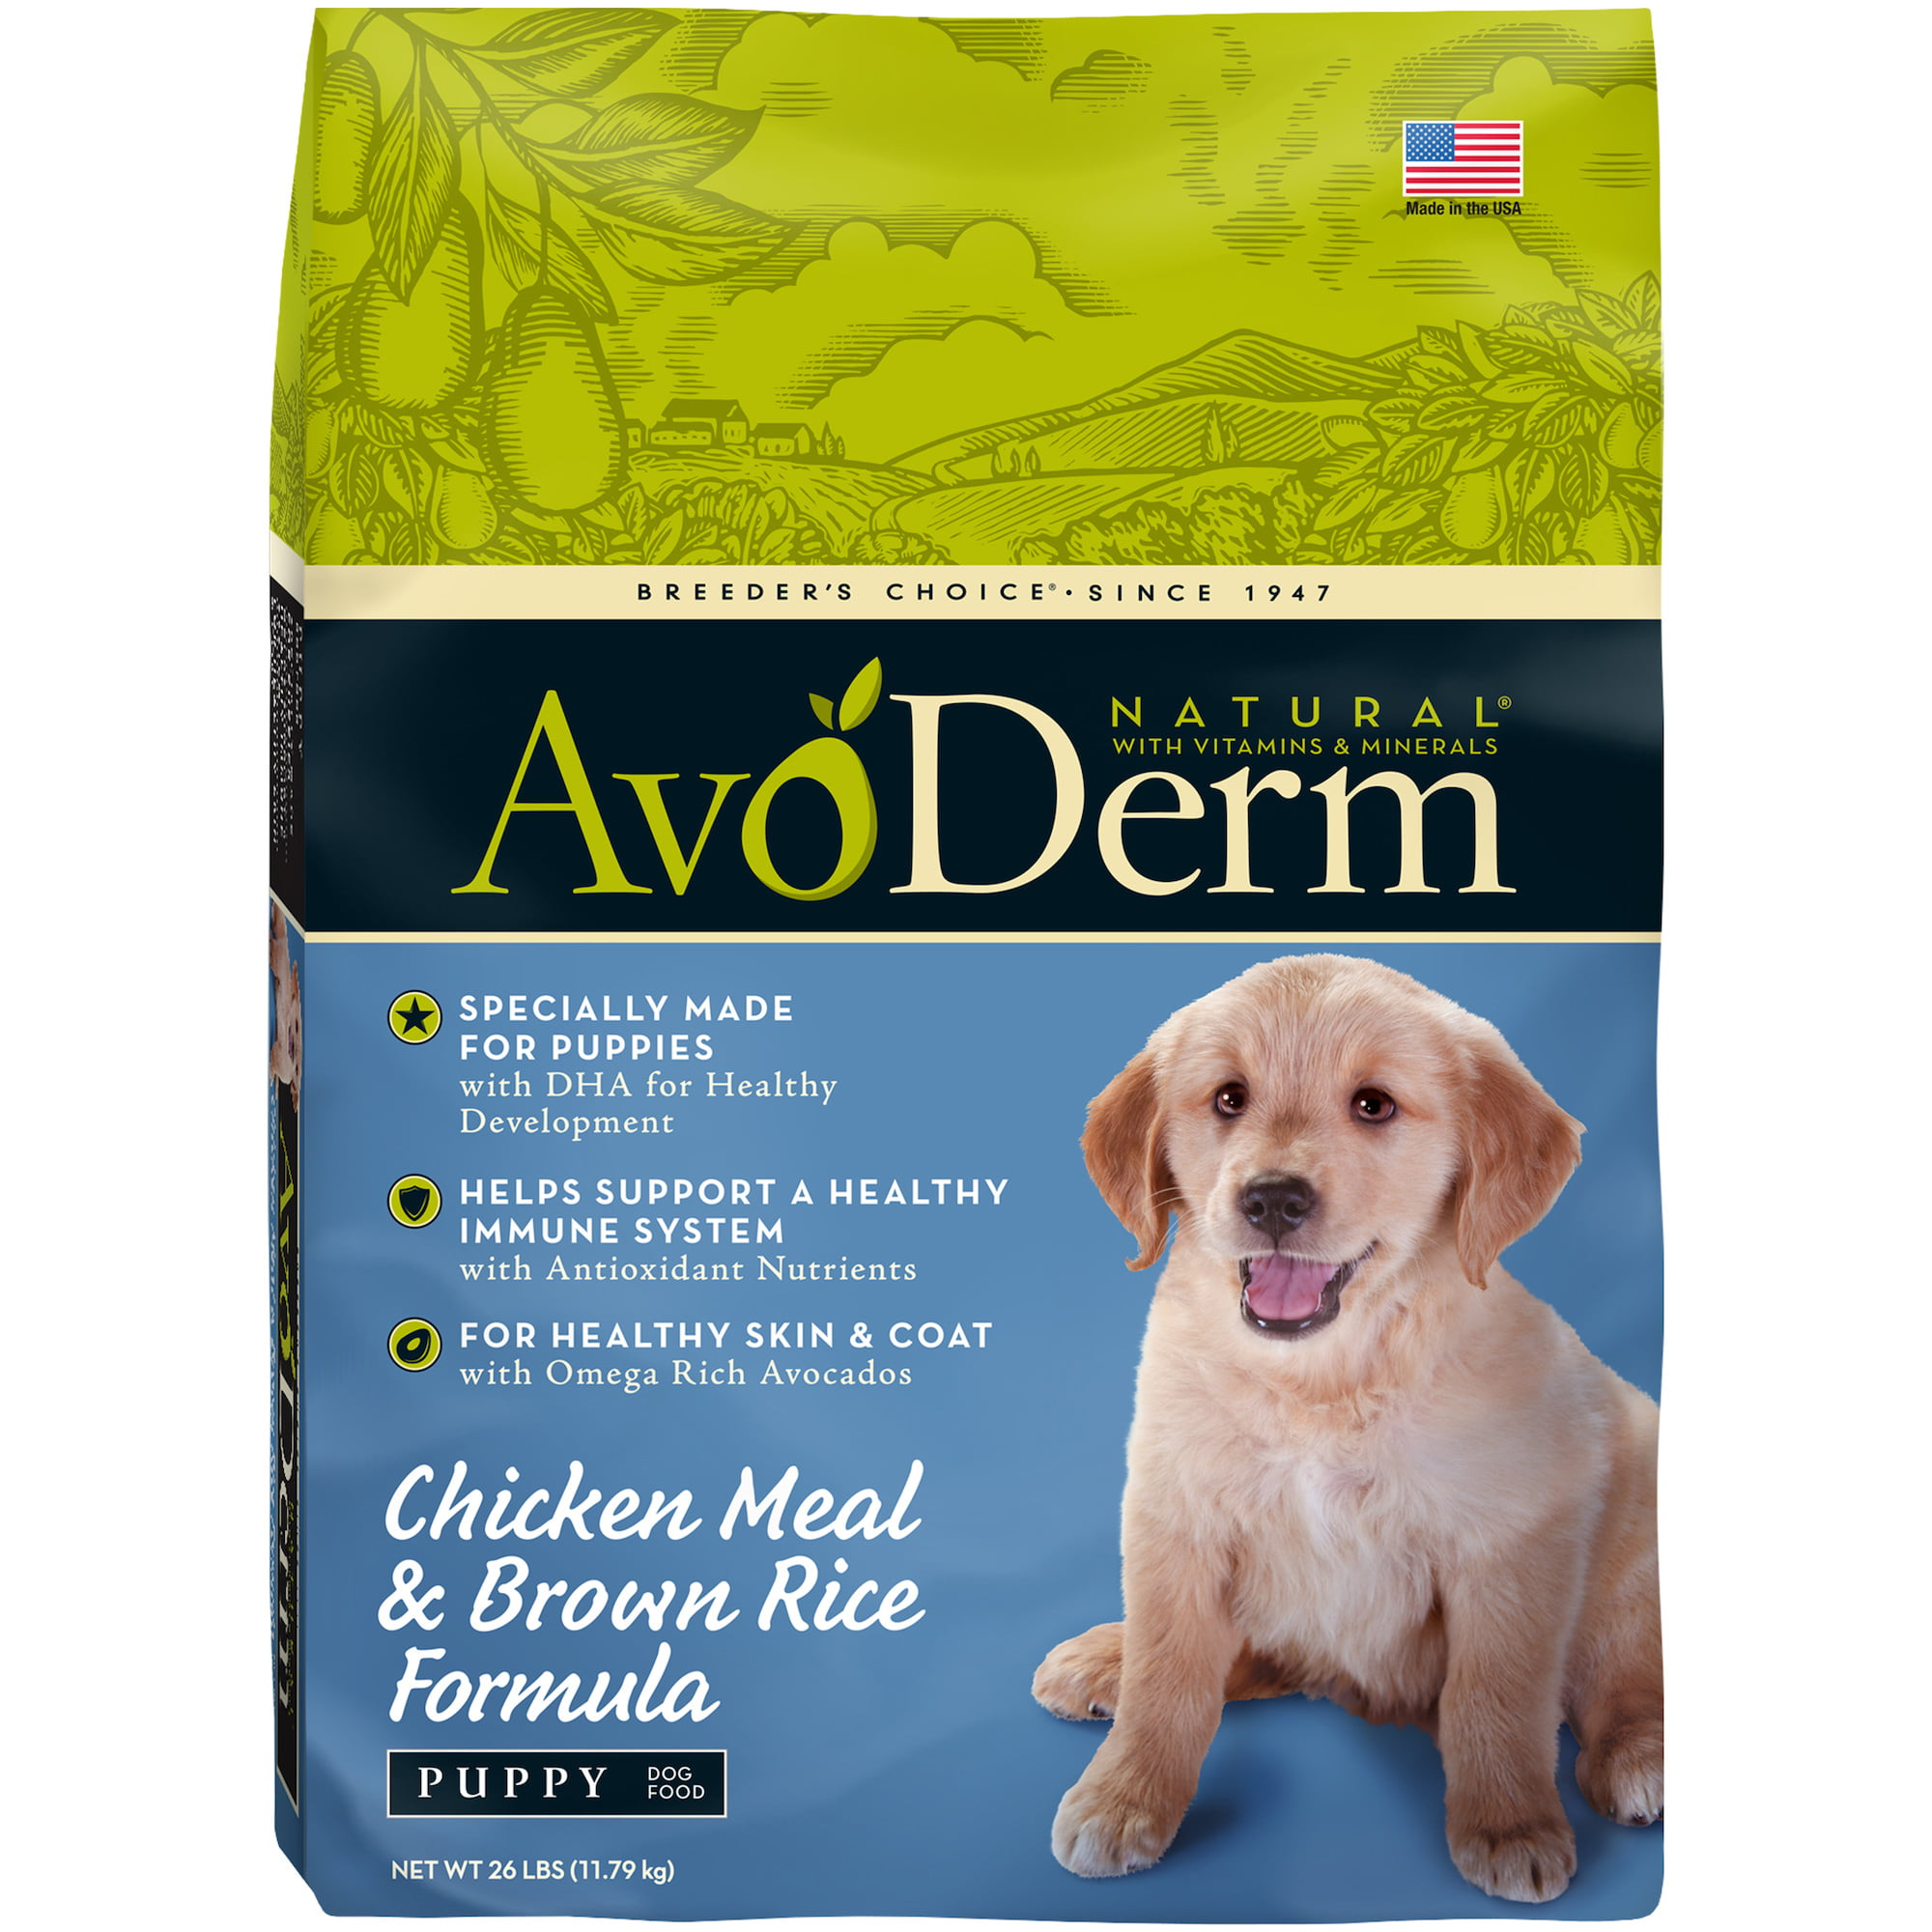 AvoDerm Puppy Food, Natural Chicken Meal and Brown Rice Formula, 26-Pound by Breeder's Choice